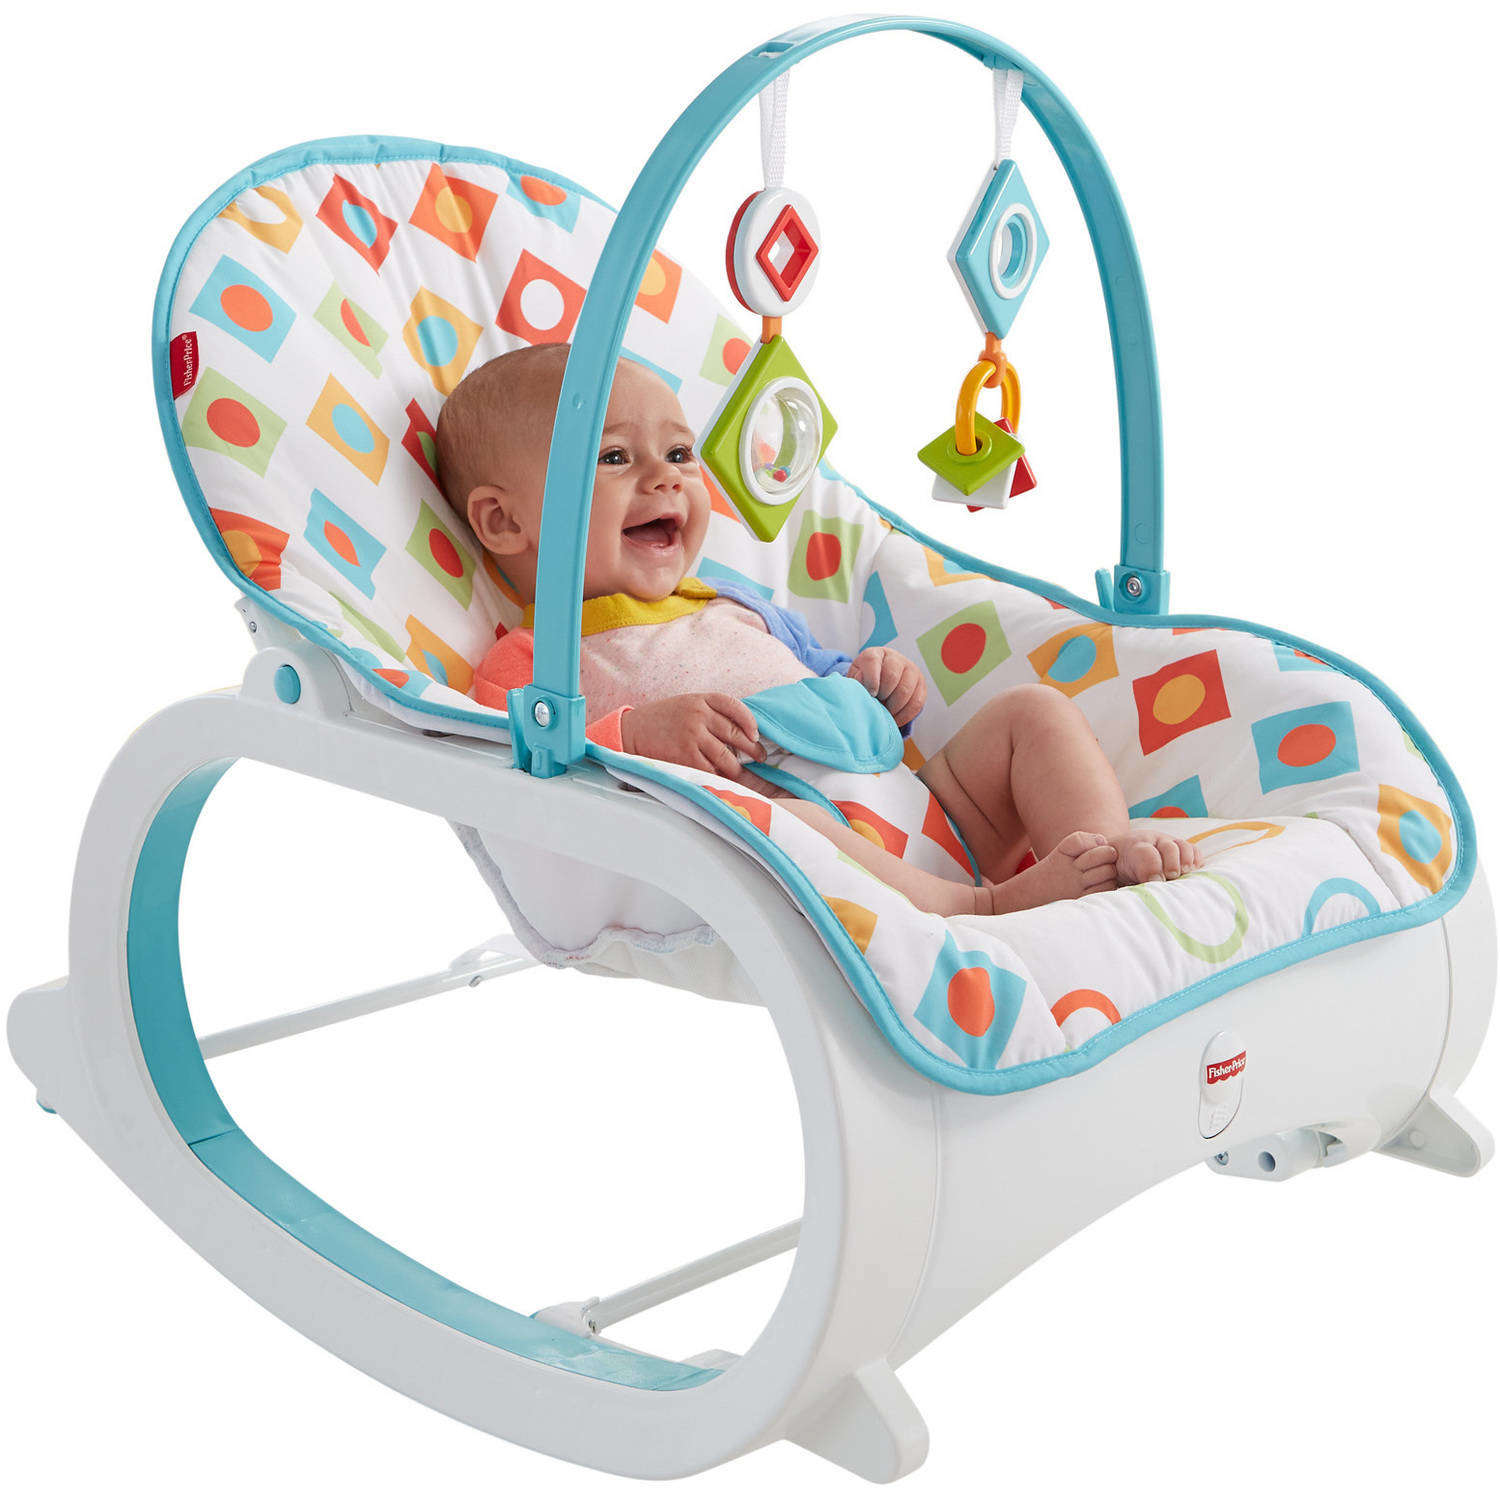 Fisher Price Infant-to-Toddler Rocker, Geo Diamonds by Fisher-Price